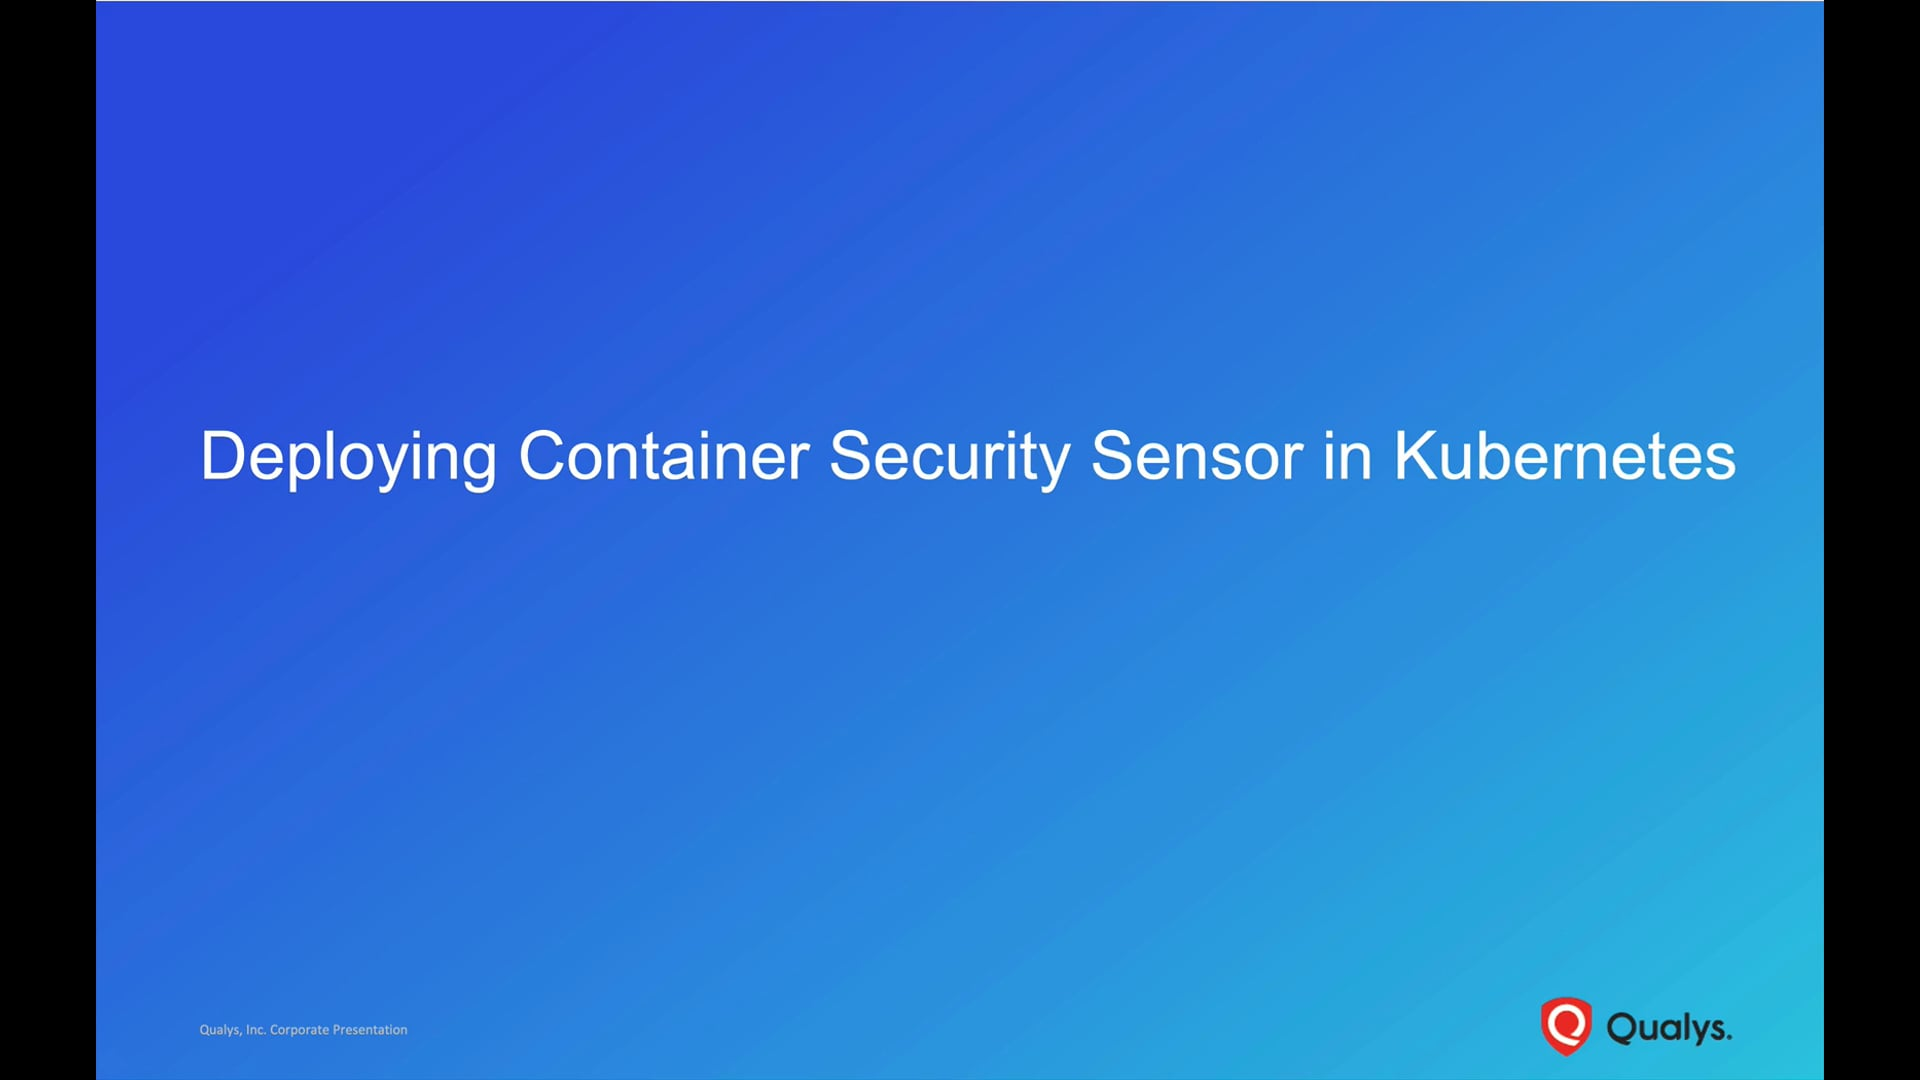 Deploying Container Security Sensor in Kubernetes